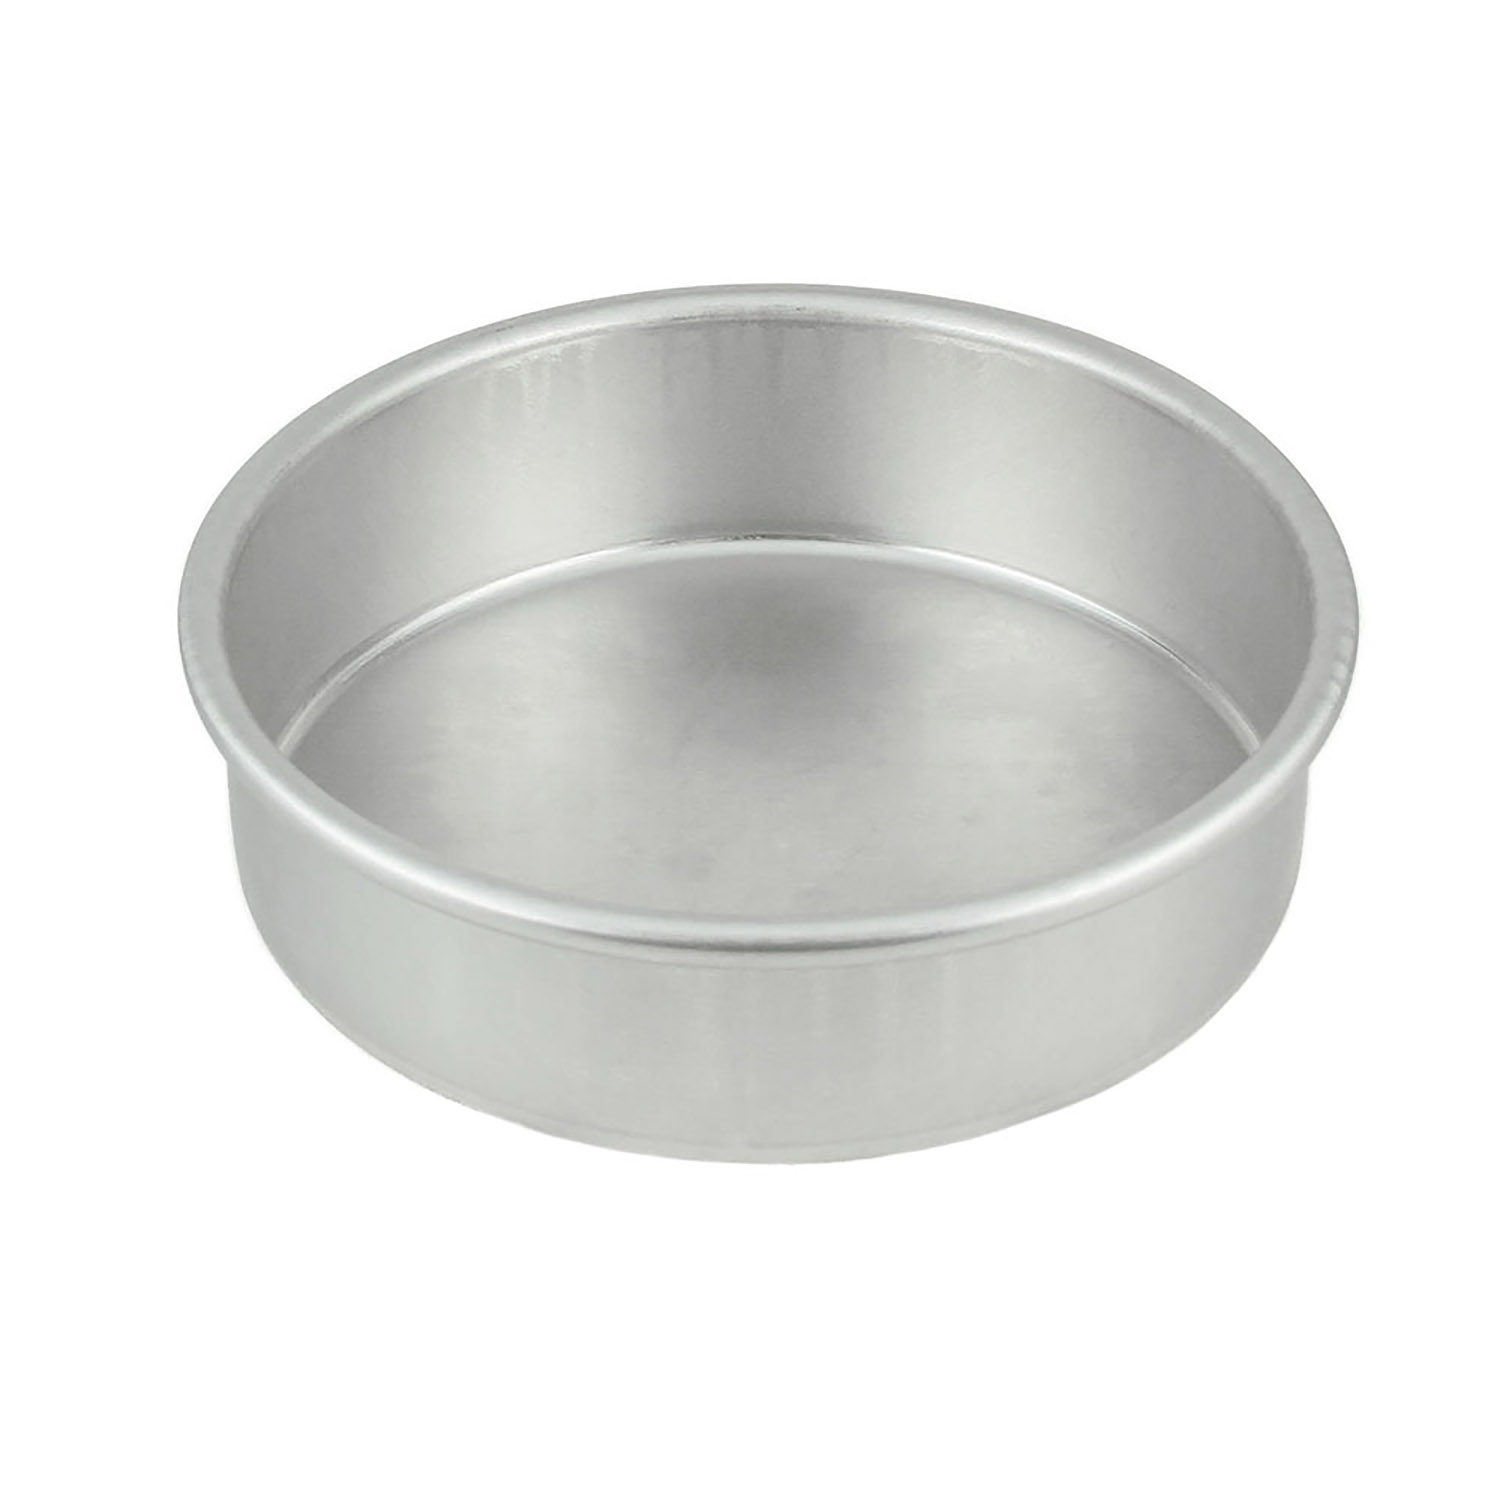 "7 x 2"" Magic Line Round Cake Pan"